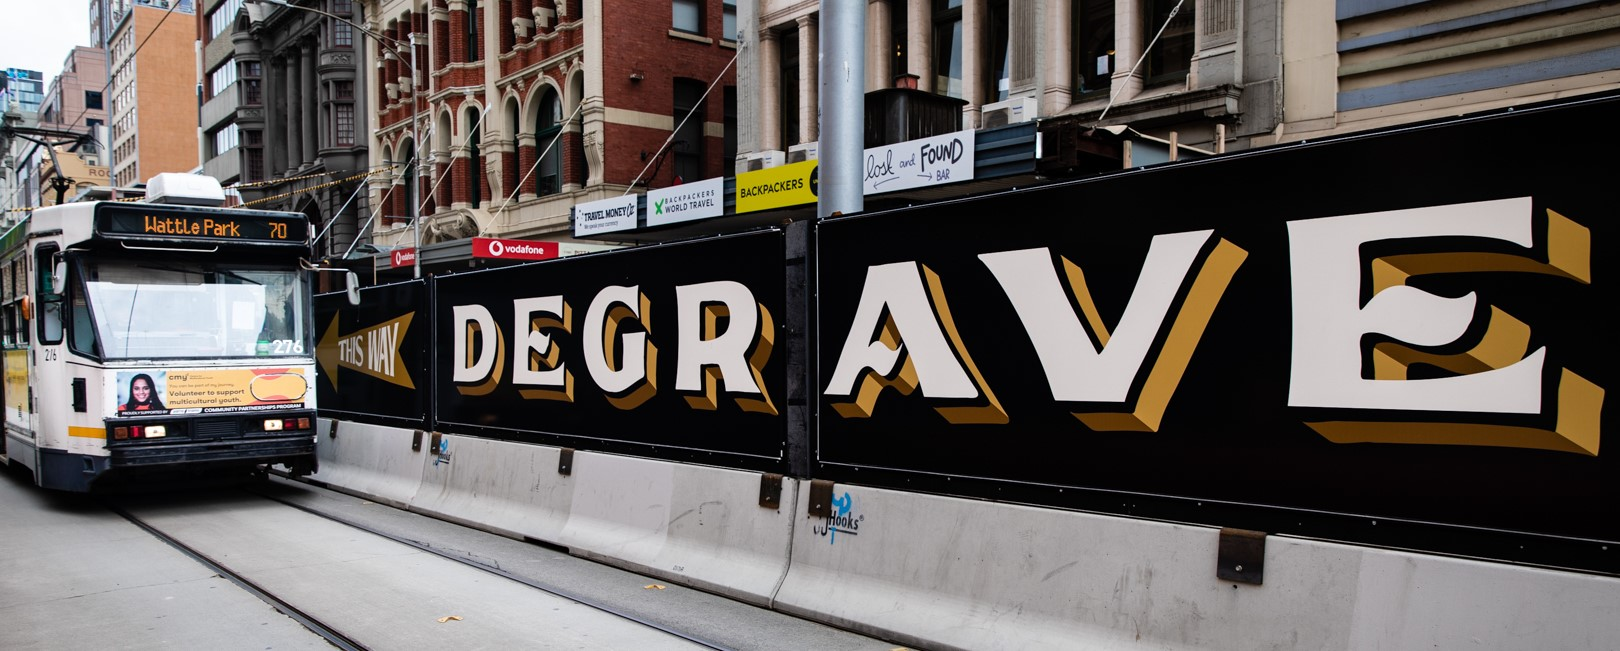 Old-fashioned signage points to Degraves Street behind tram tracks.